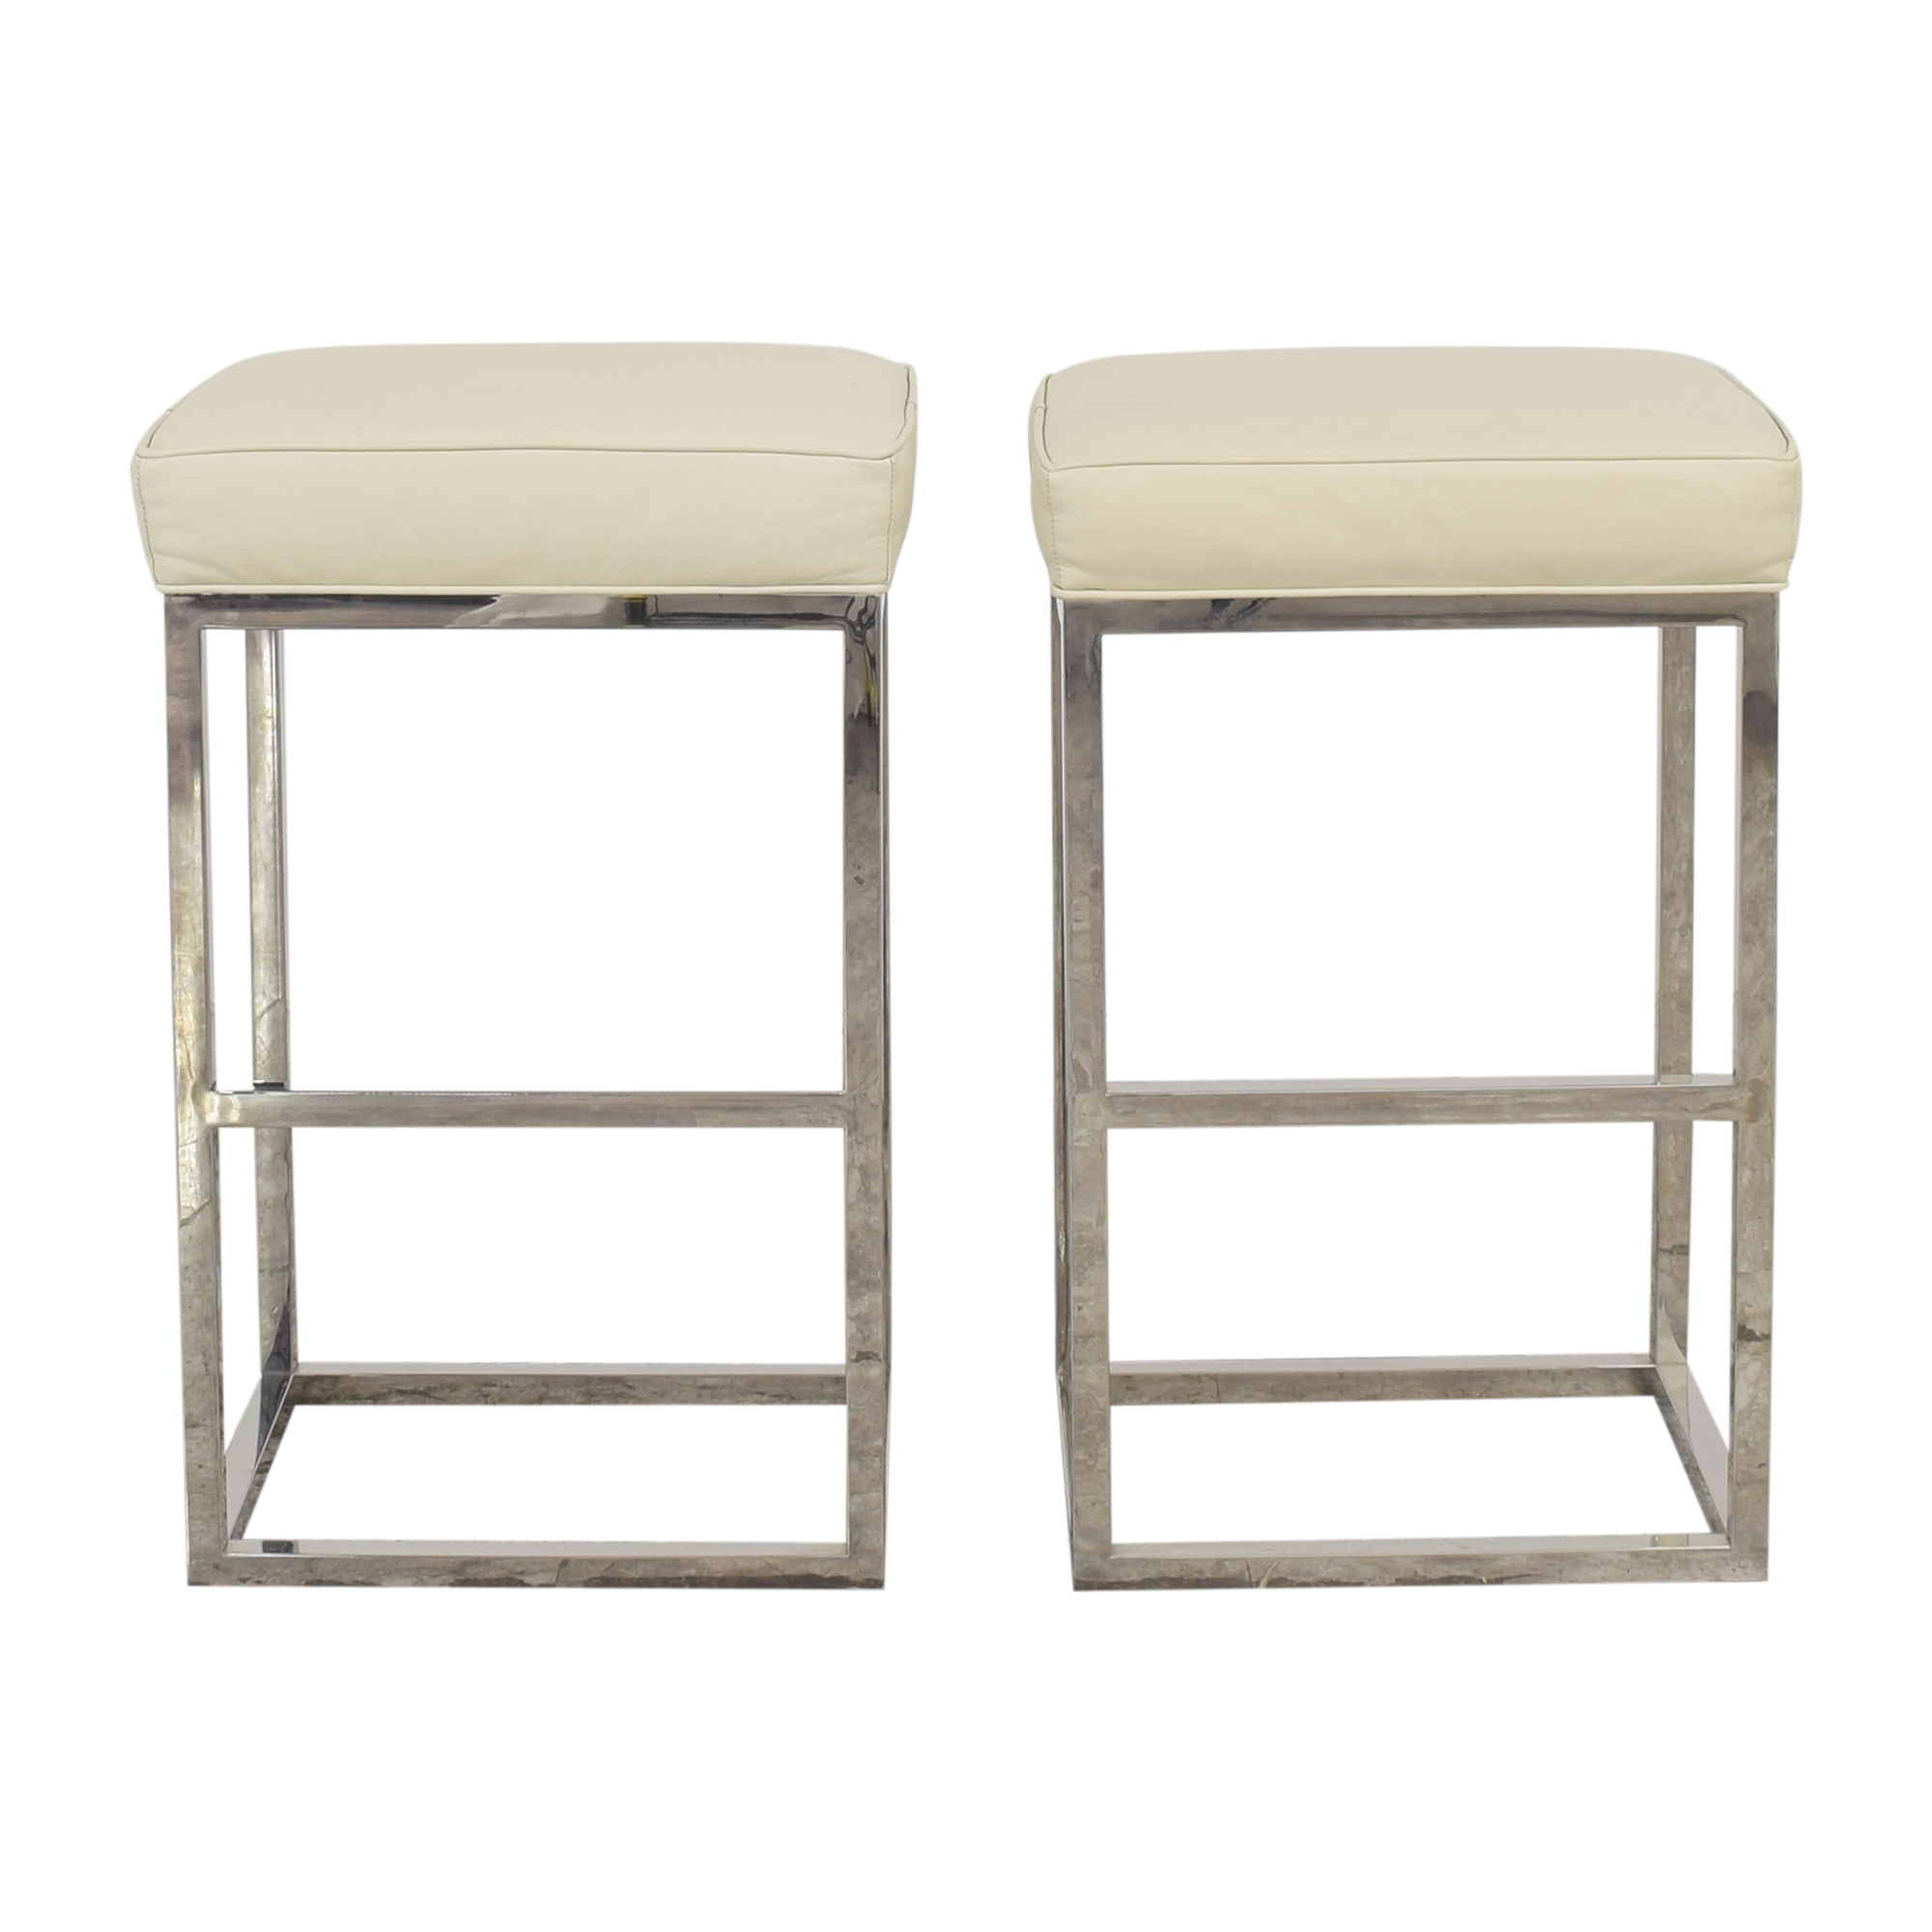 shop Mitchell Gold + Bob Williams Jack Bar Stools Mitchell Gold + Bob Williams Stools